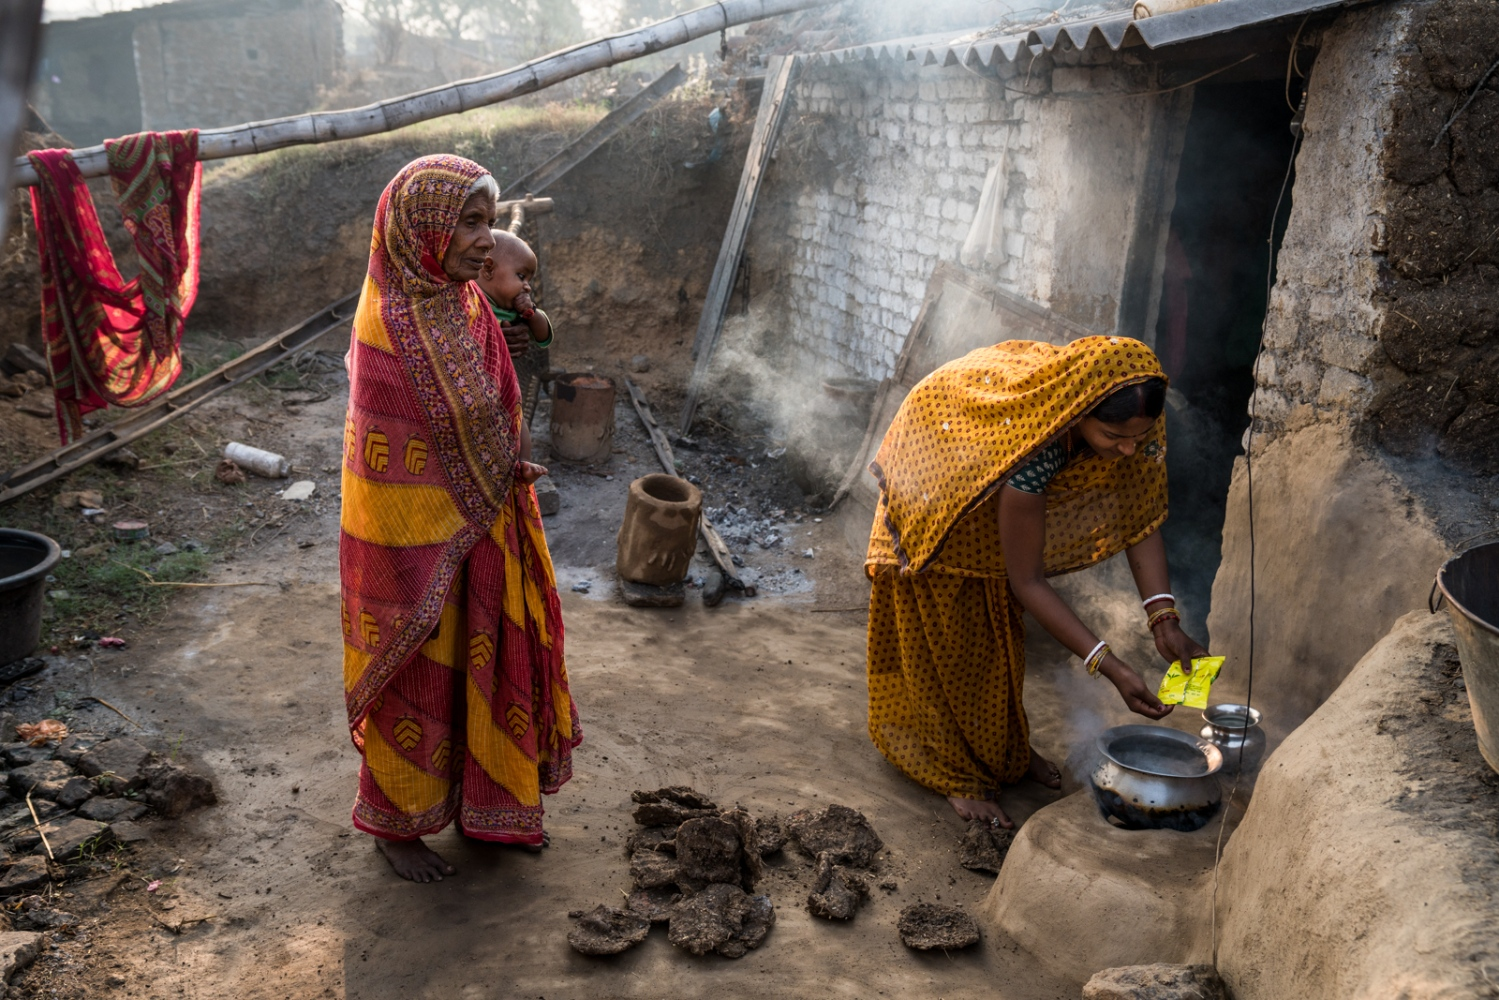 Grandmother watches daughter in law prepare breakfast in the village just beside a collapsed area.